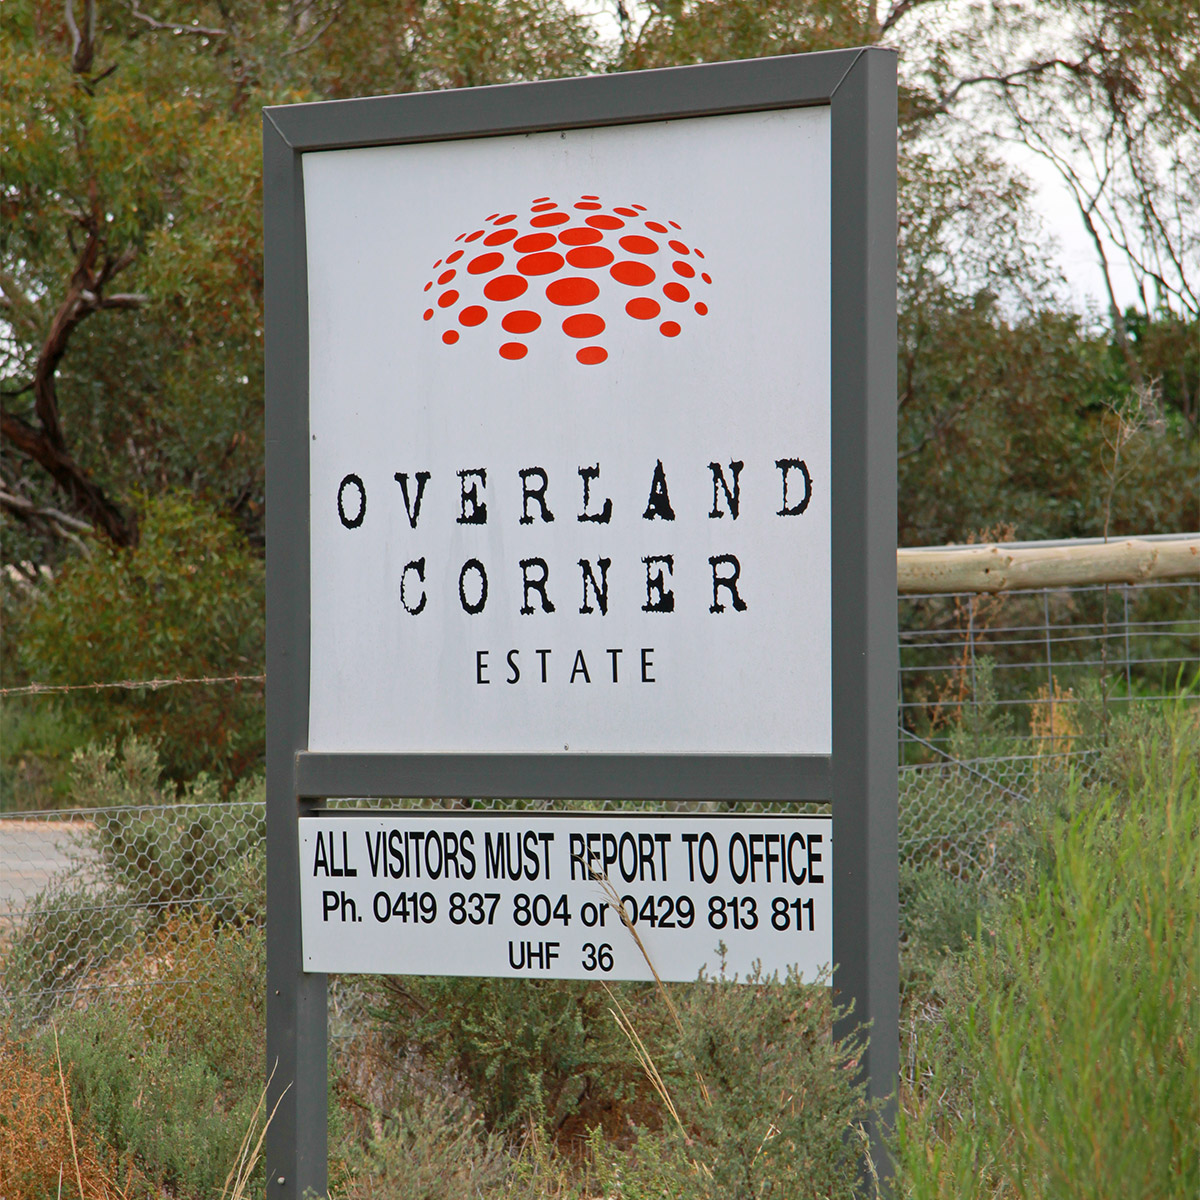 Overland Corner Estate sign